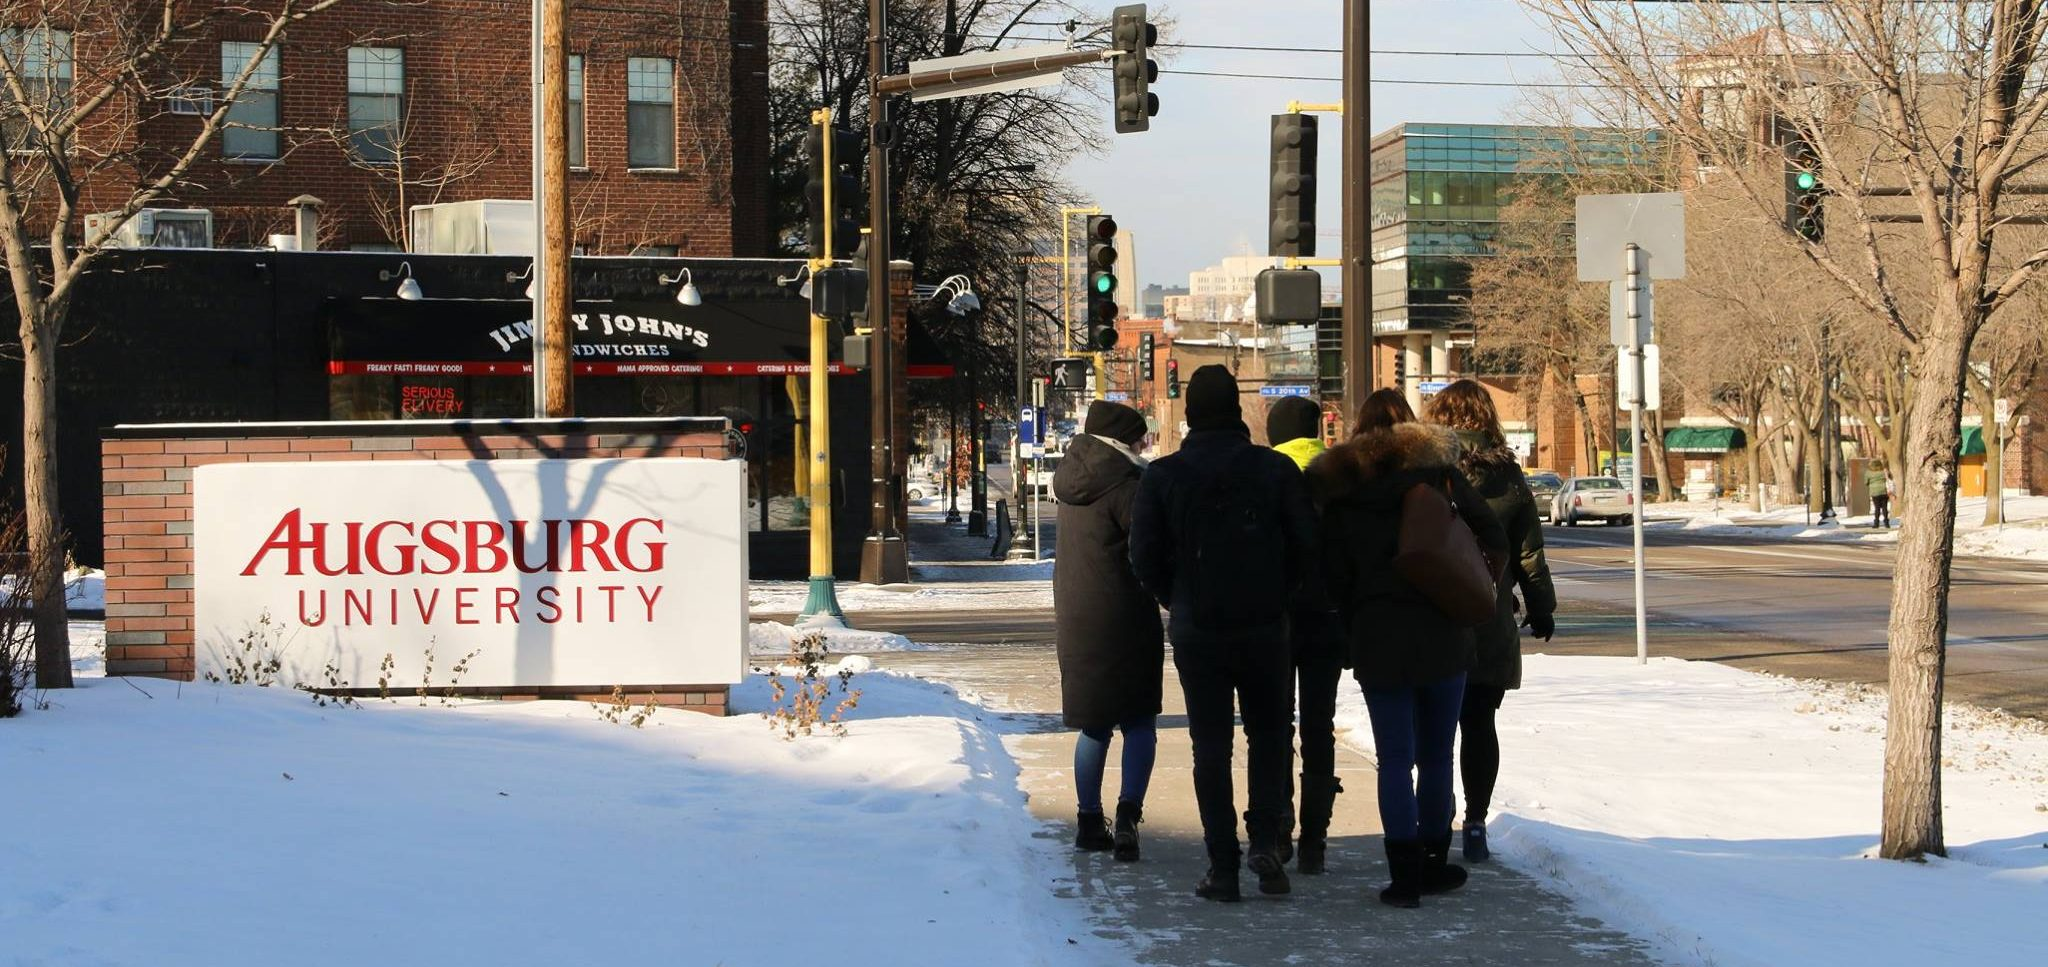 A group of new International students make their way off campus to explore during their first days at Augsburg University.